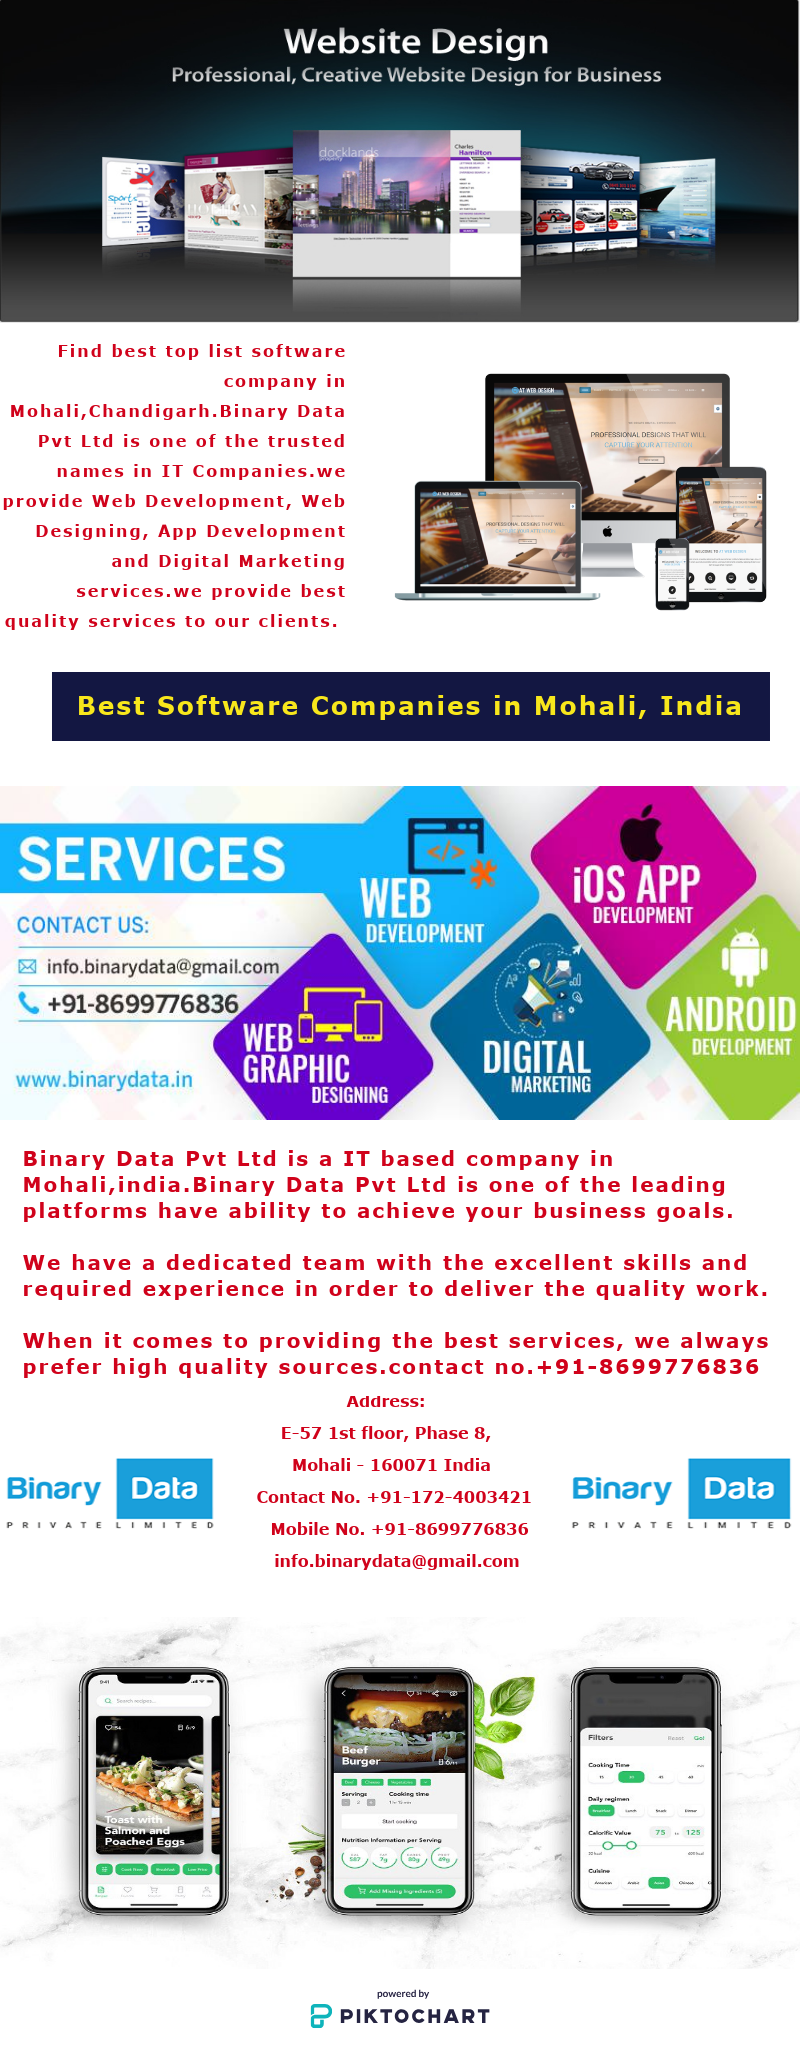 Find best top list software company in Mohali,Chandigarh